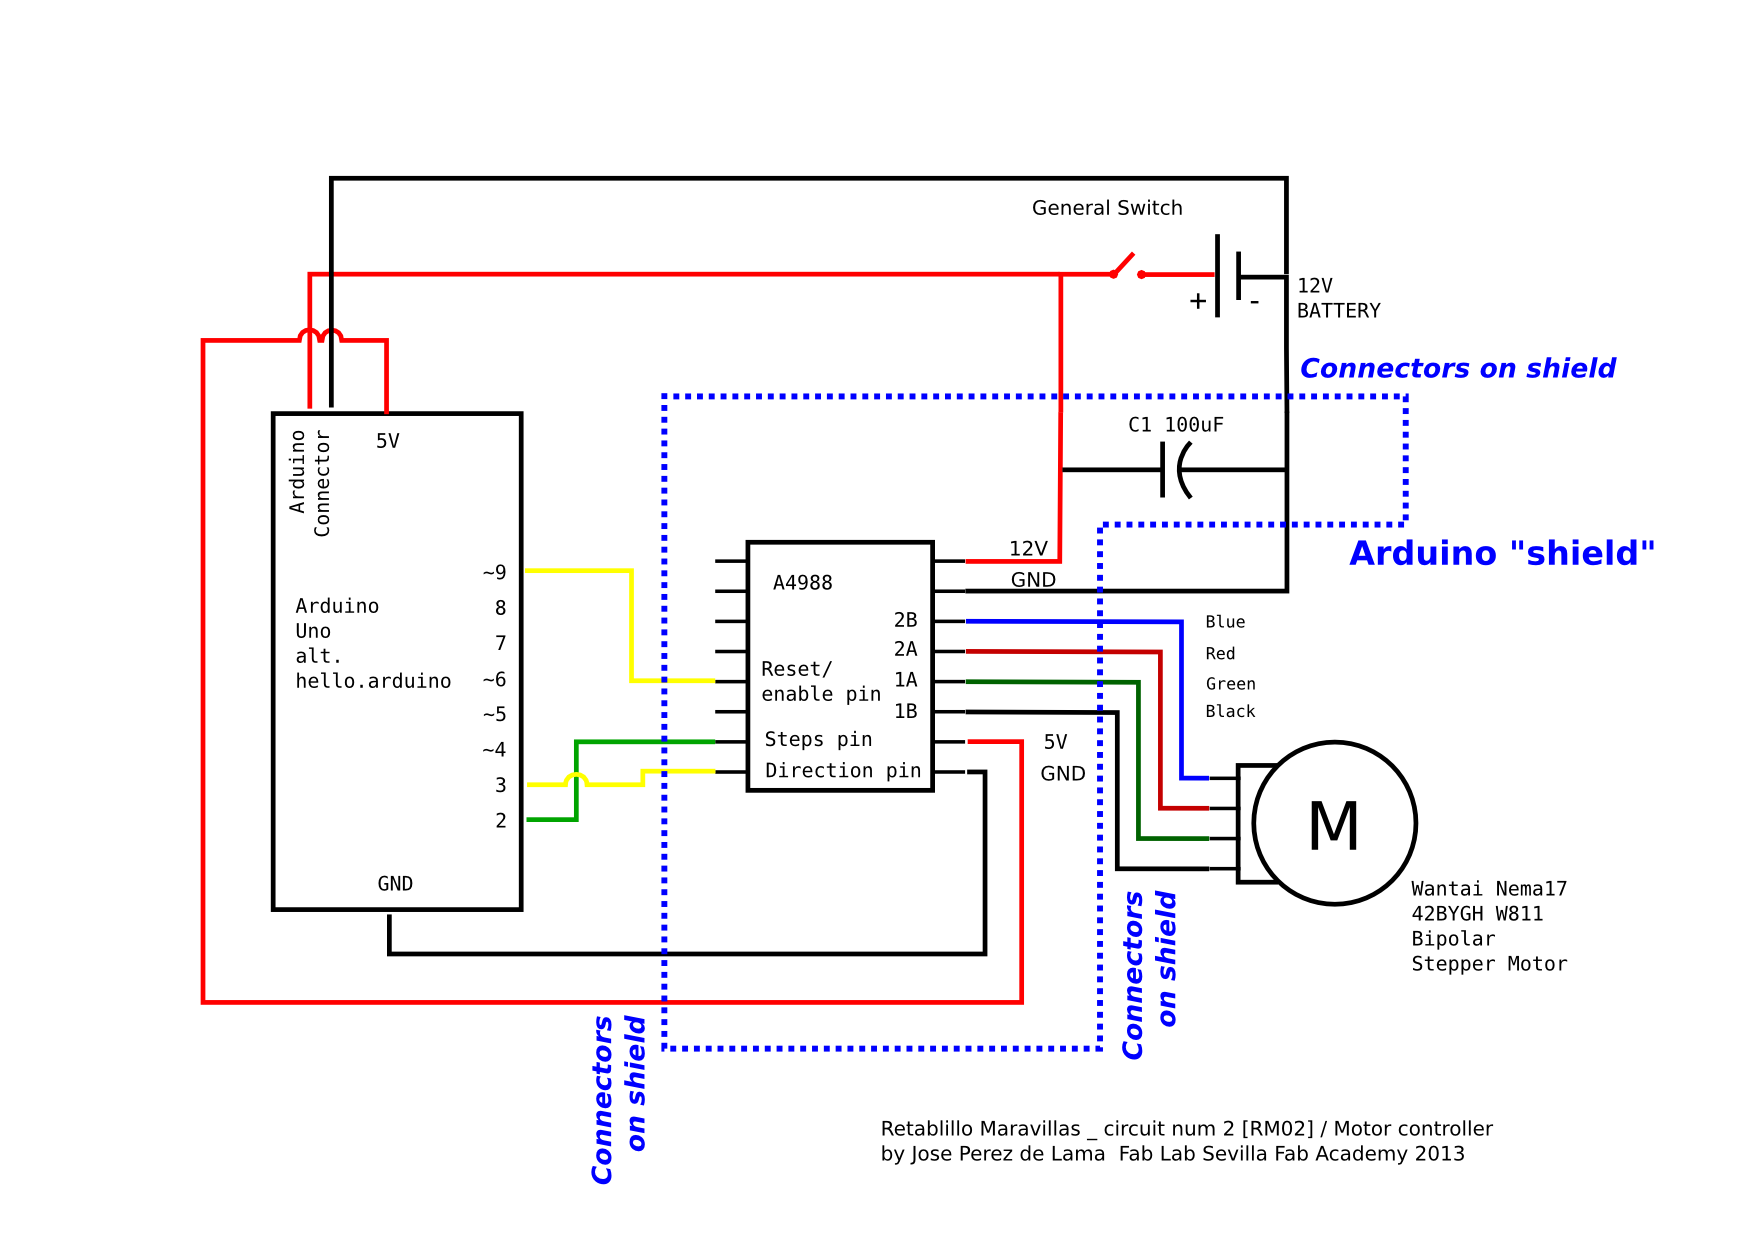 Alternator Regulator Wiring Slphhrys Diagrams Source Bipolar Stepper Motor Diagram Wire Data Schema U2022